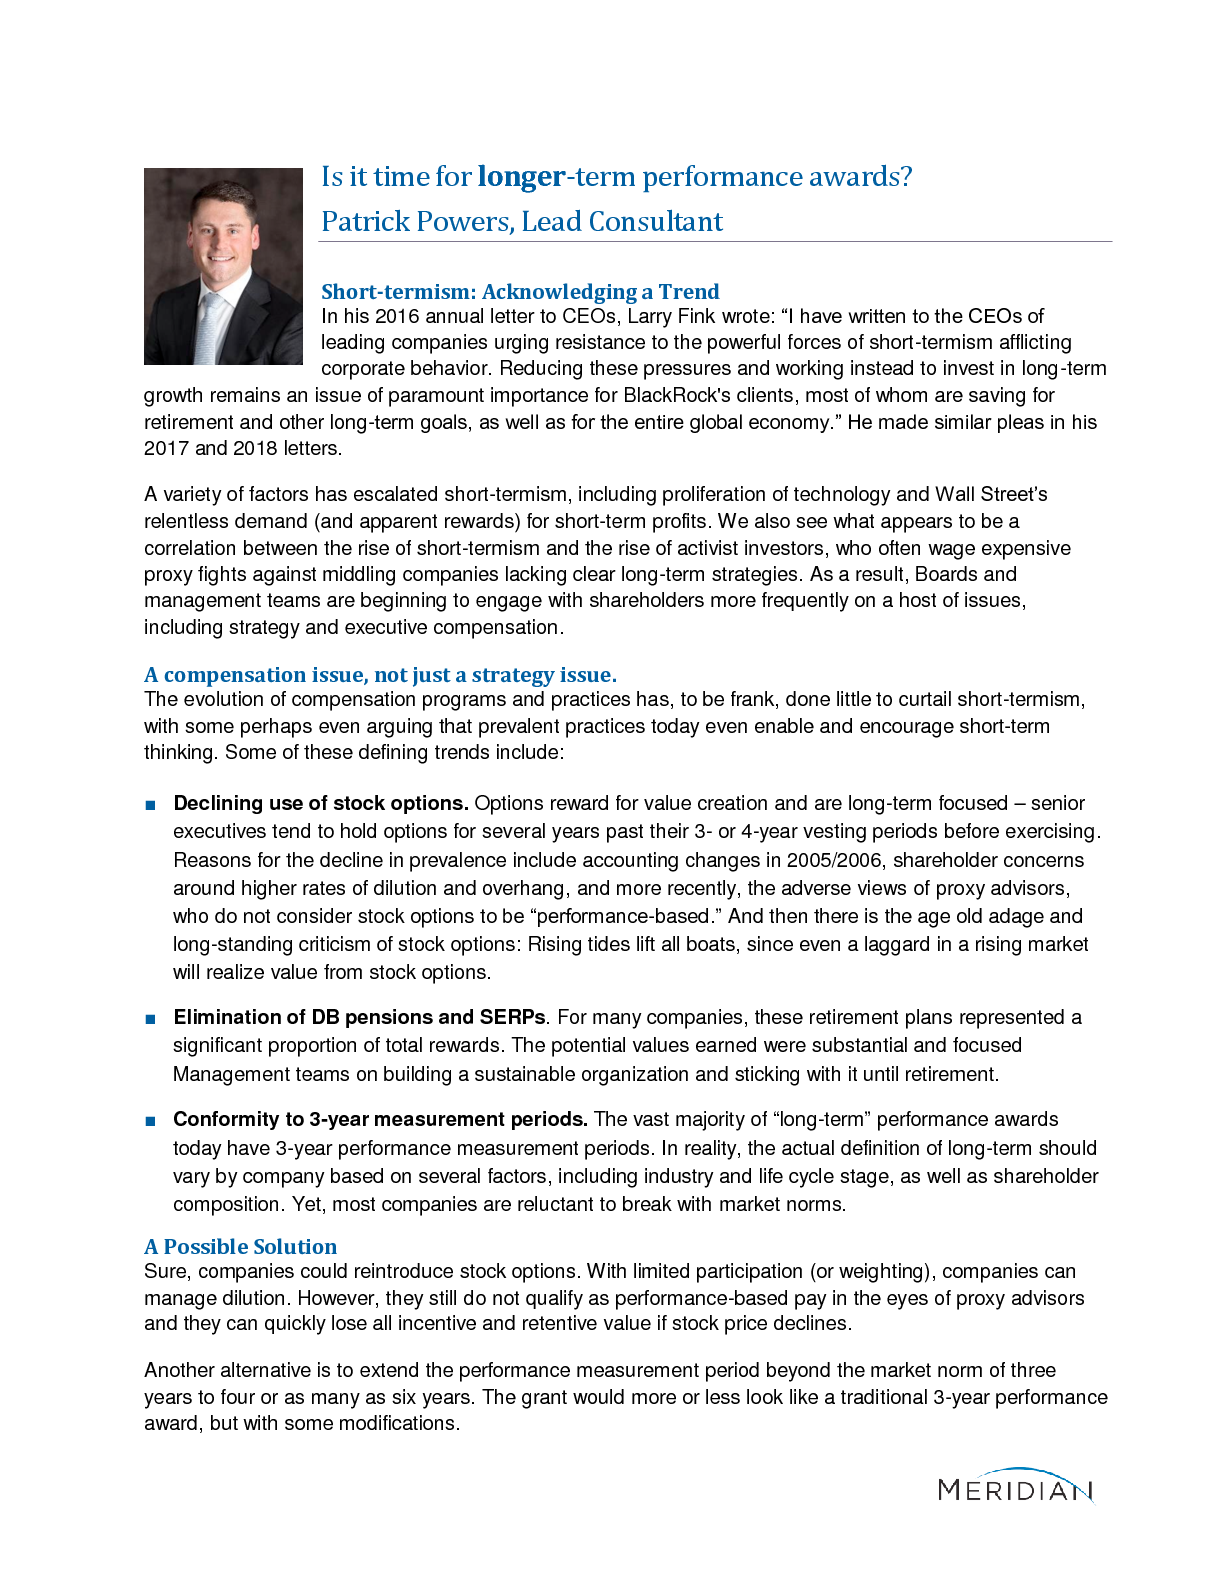 Is it time for longer-term performance awards? (PDF)